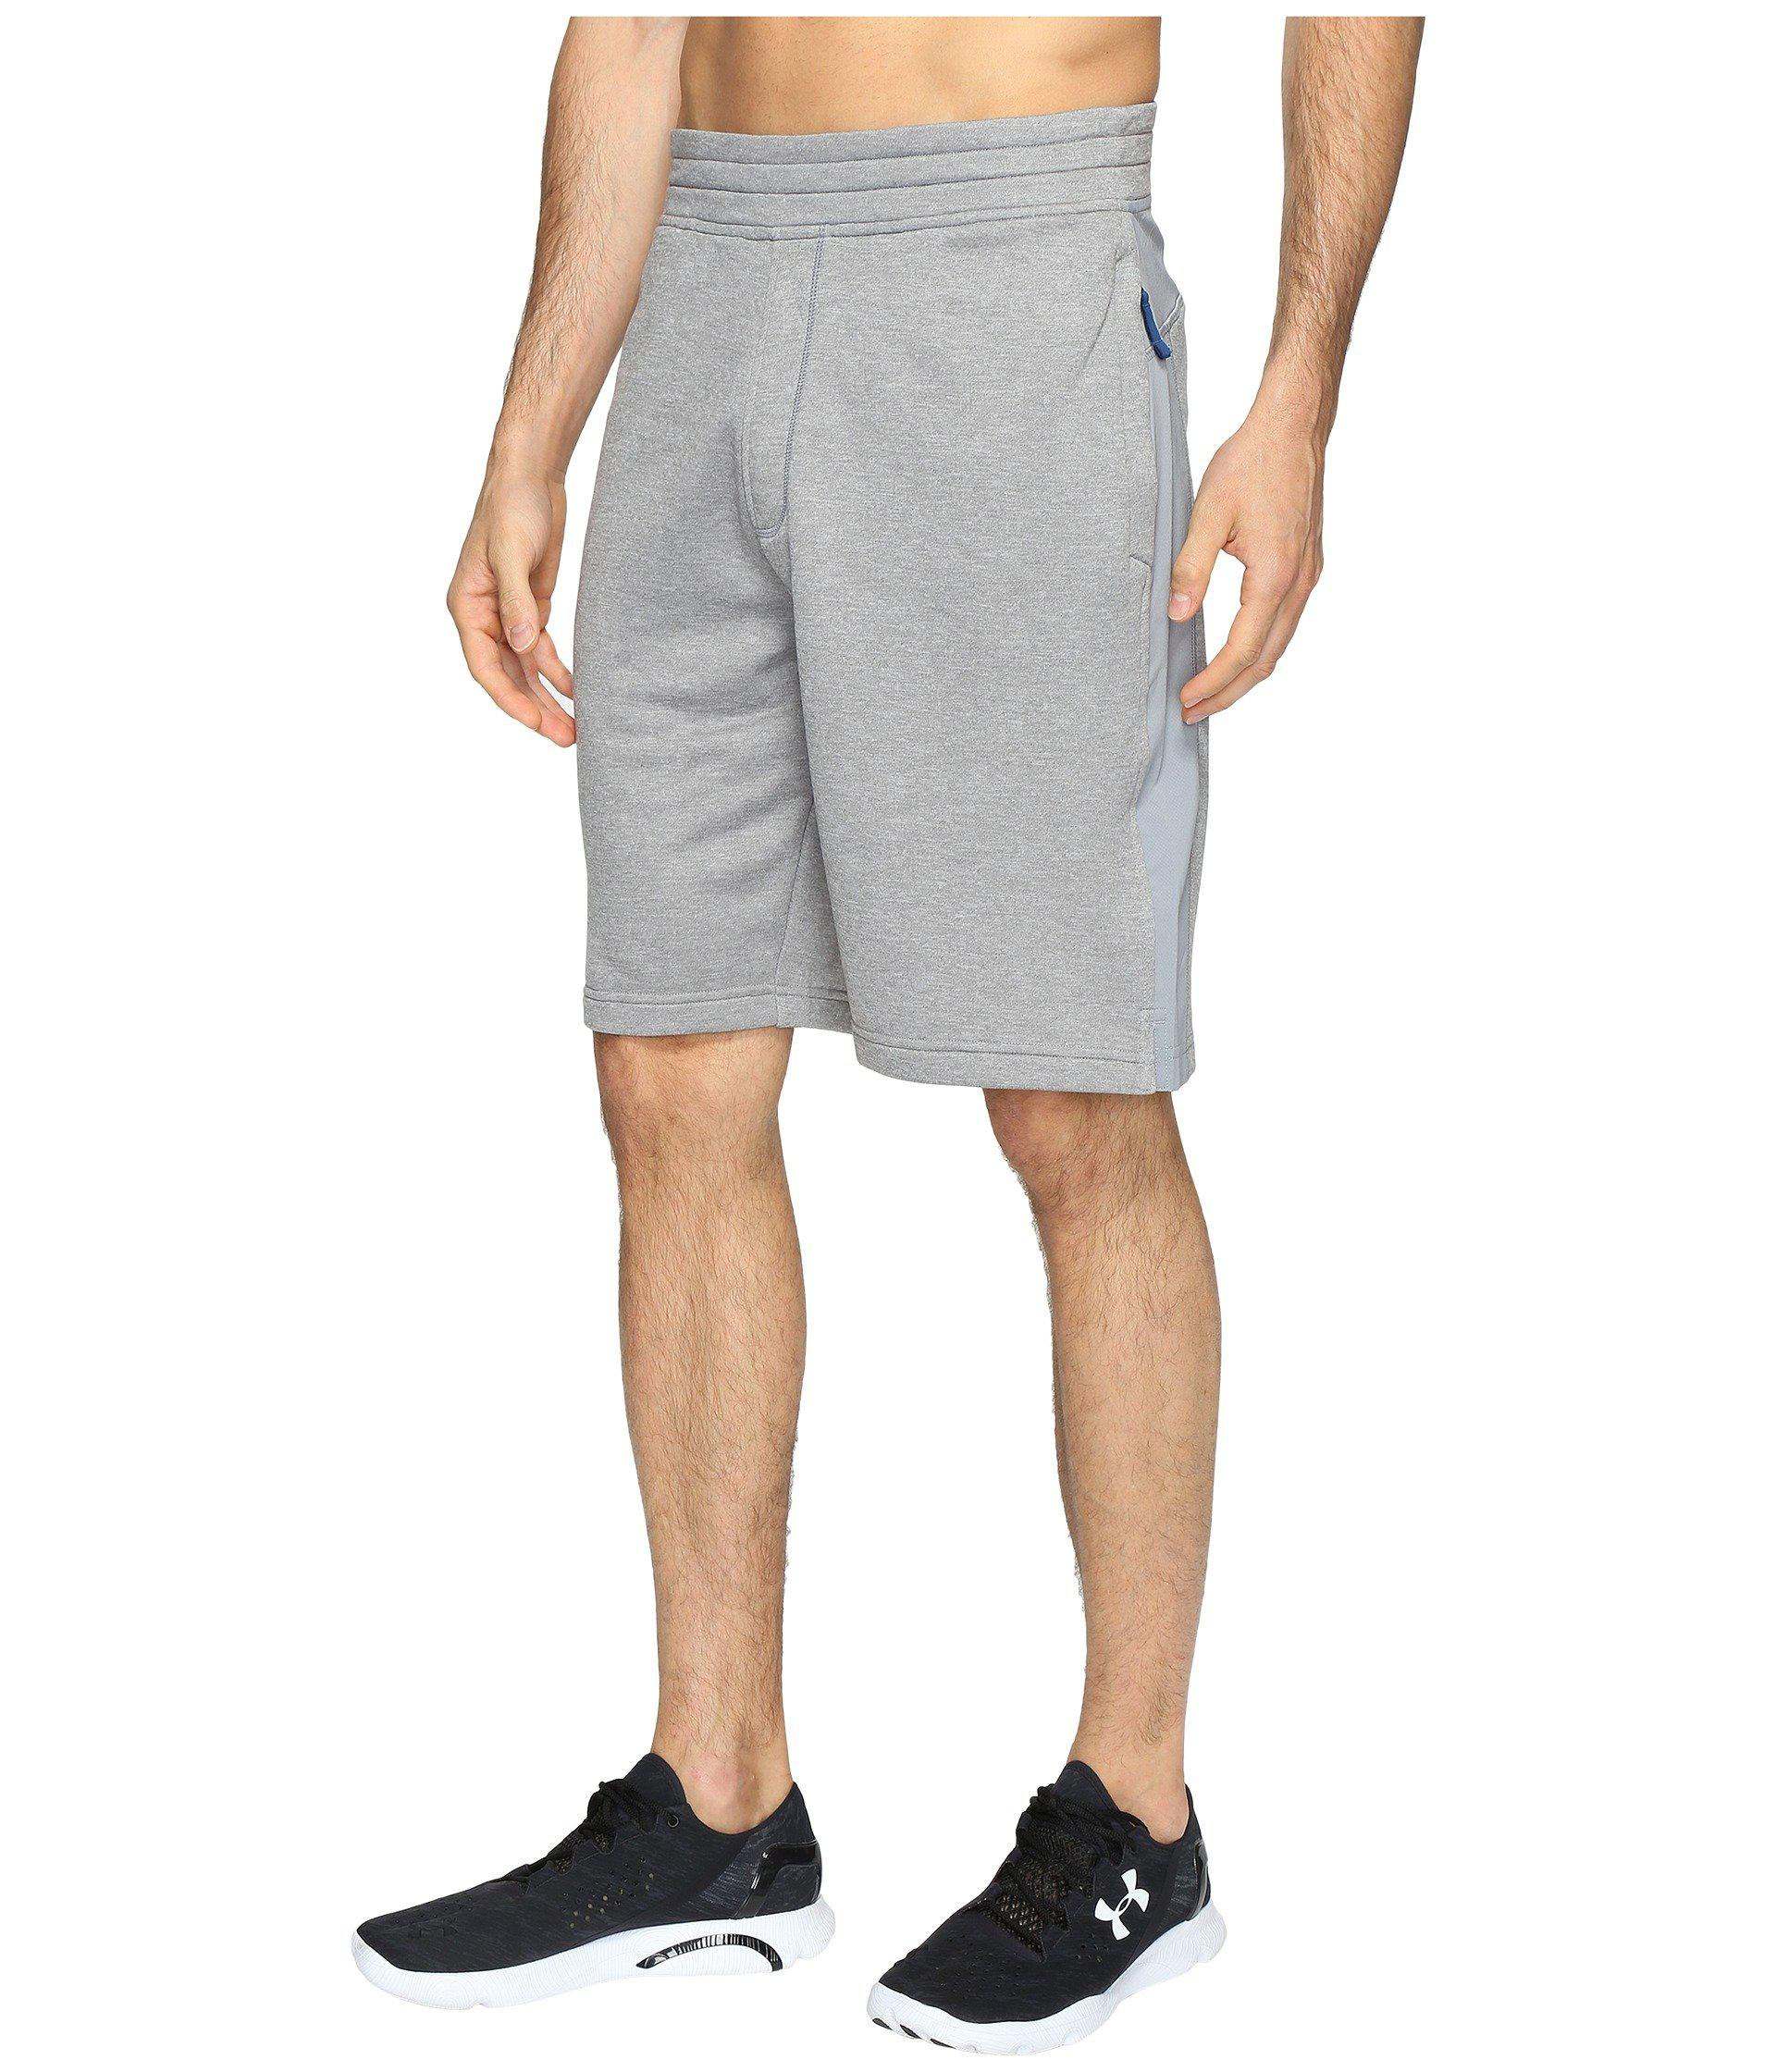 4a9365b9 Lyst - Under Armour Tech Terry Shorts in Gray for Men